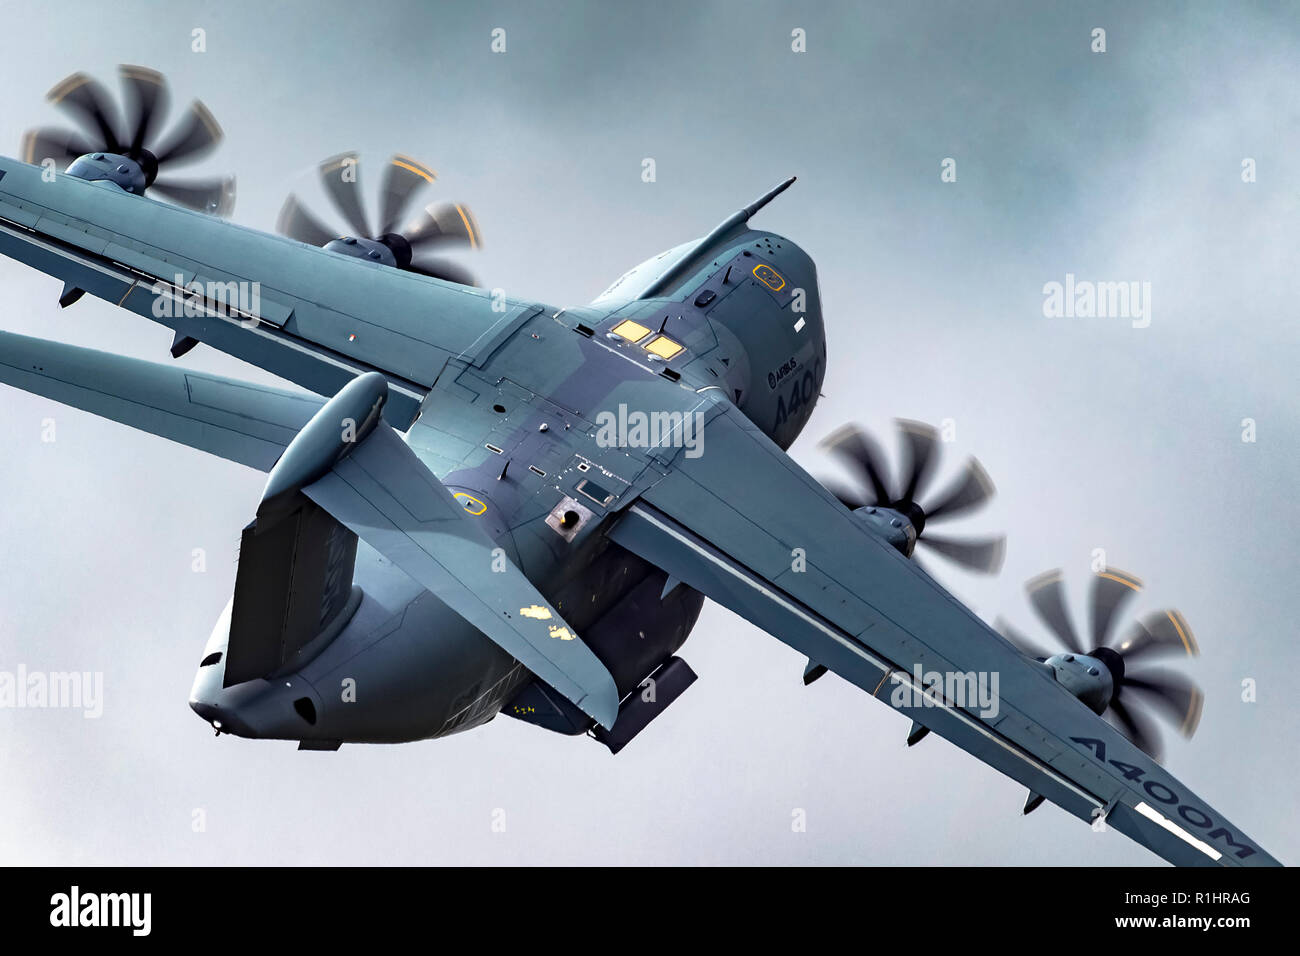 Airbus A400M Atlas is a European, four-engine turboprop military transport aircraft. It was designed by Airbus Military (now Airbus Defence and Space) - Stock Image